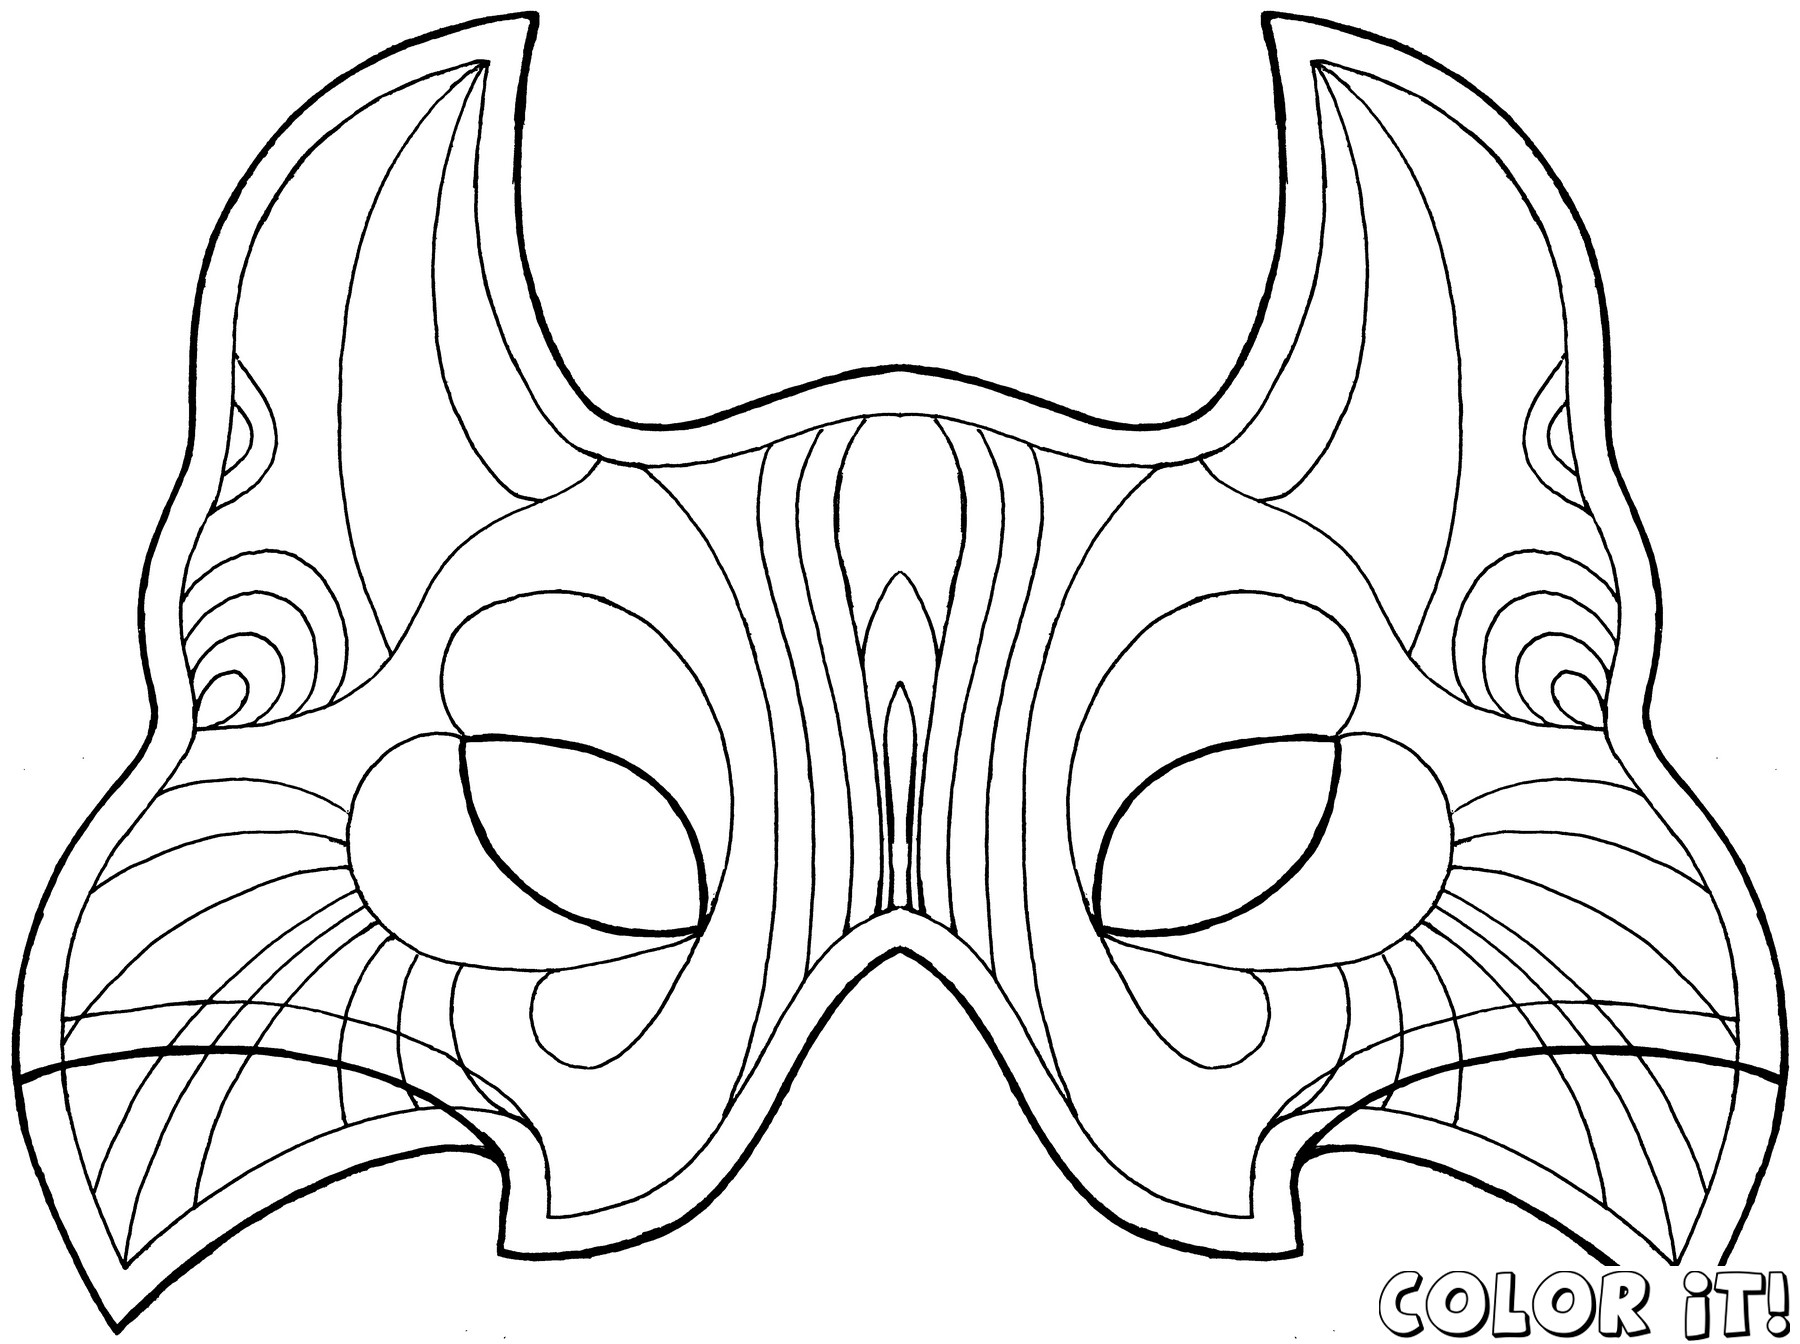 The Mask Drawing At Getdrawings Free For Personal Use The Mask